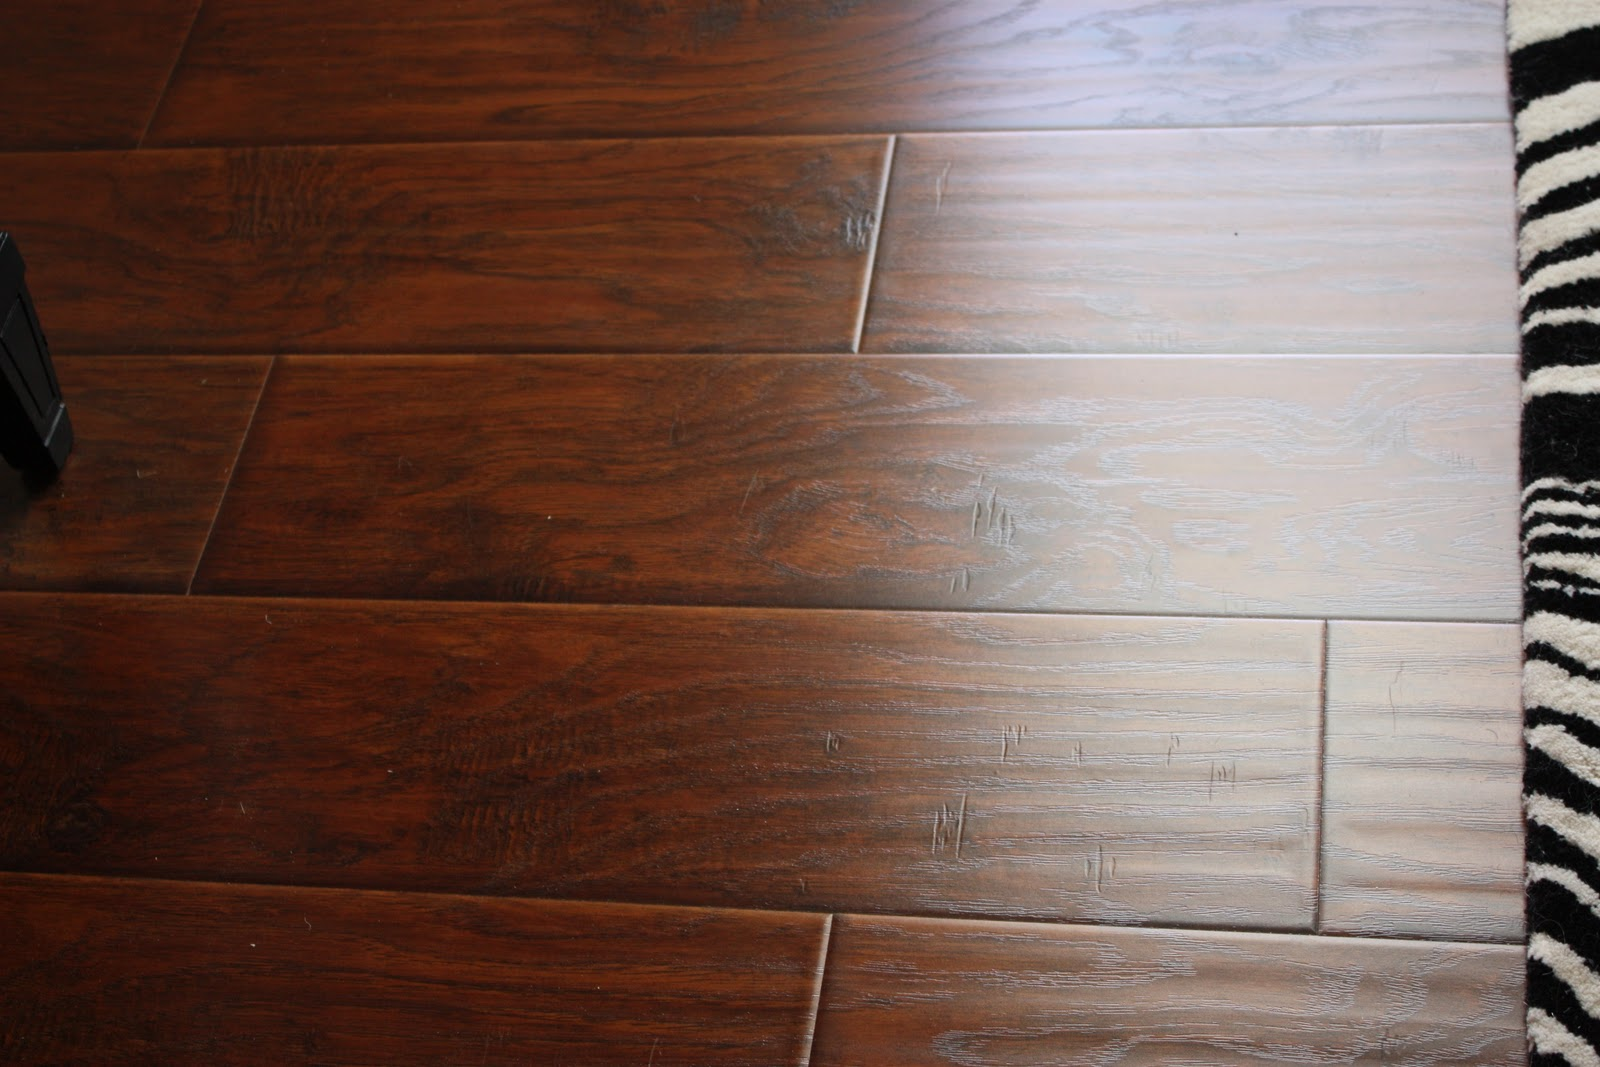 The yellow cape cod 31 days of building character wood floors - Laminate or wood flooring ...